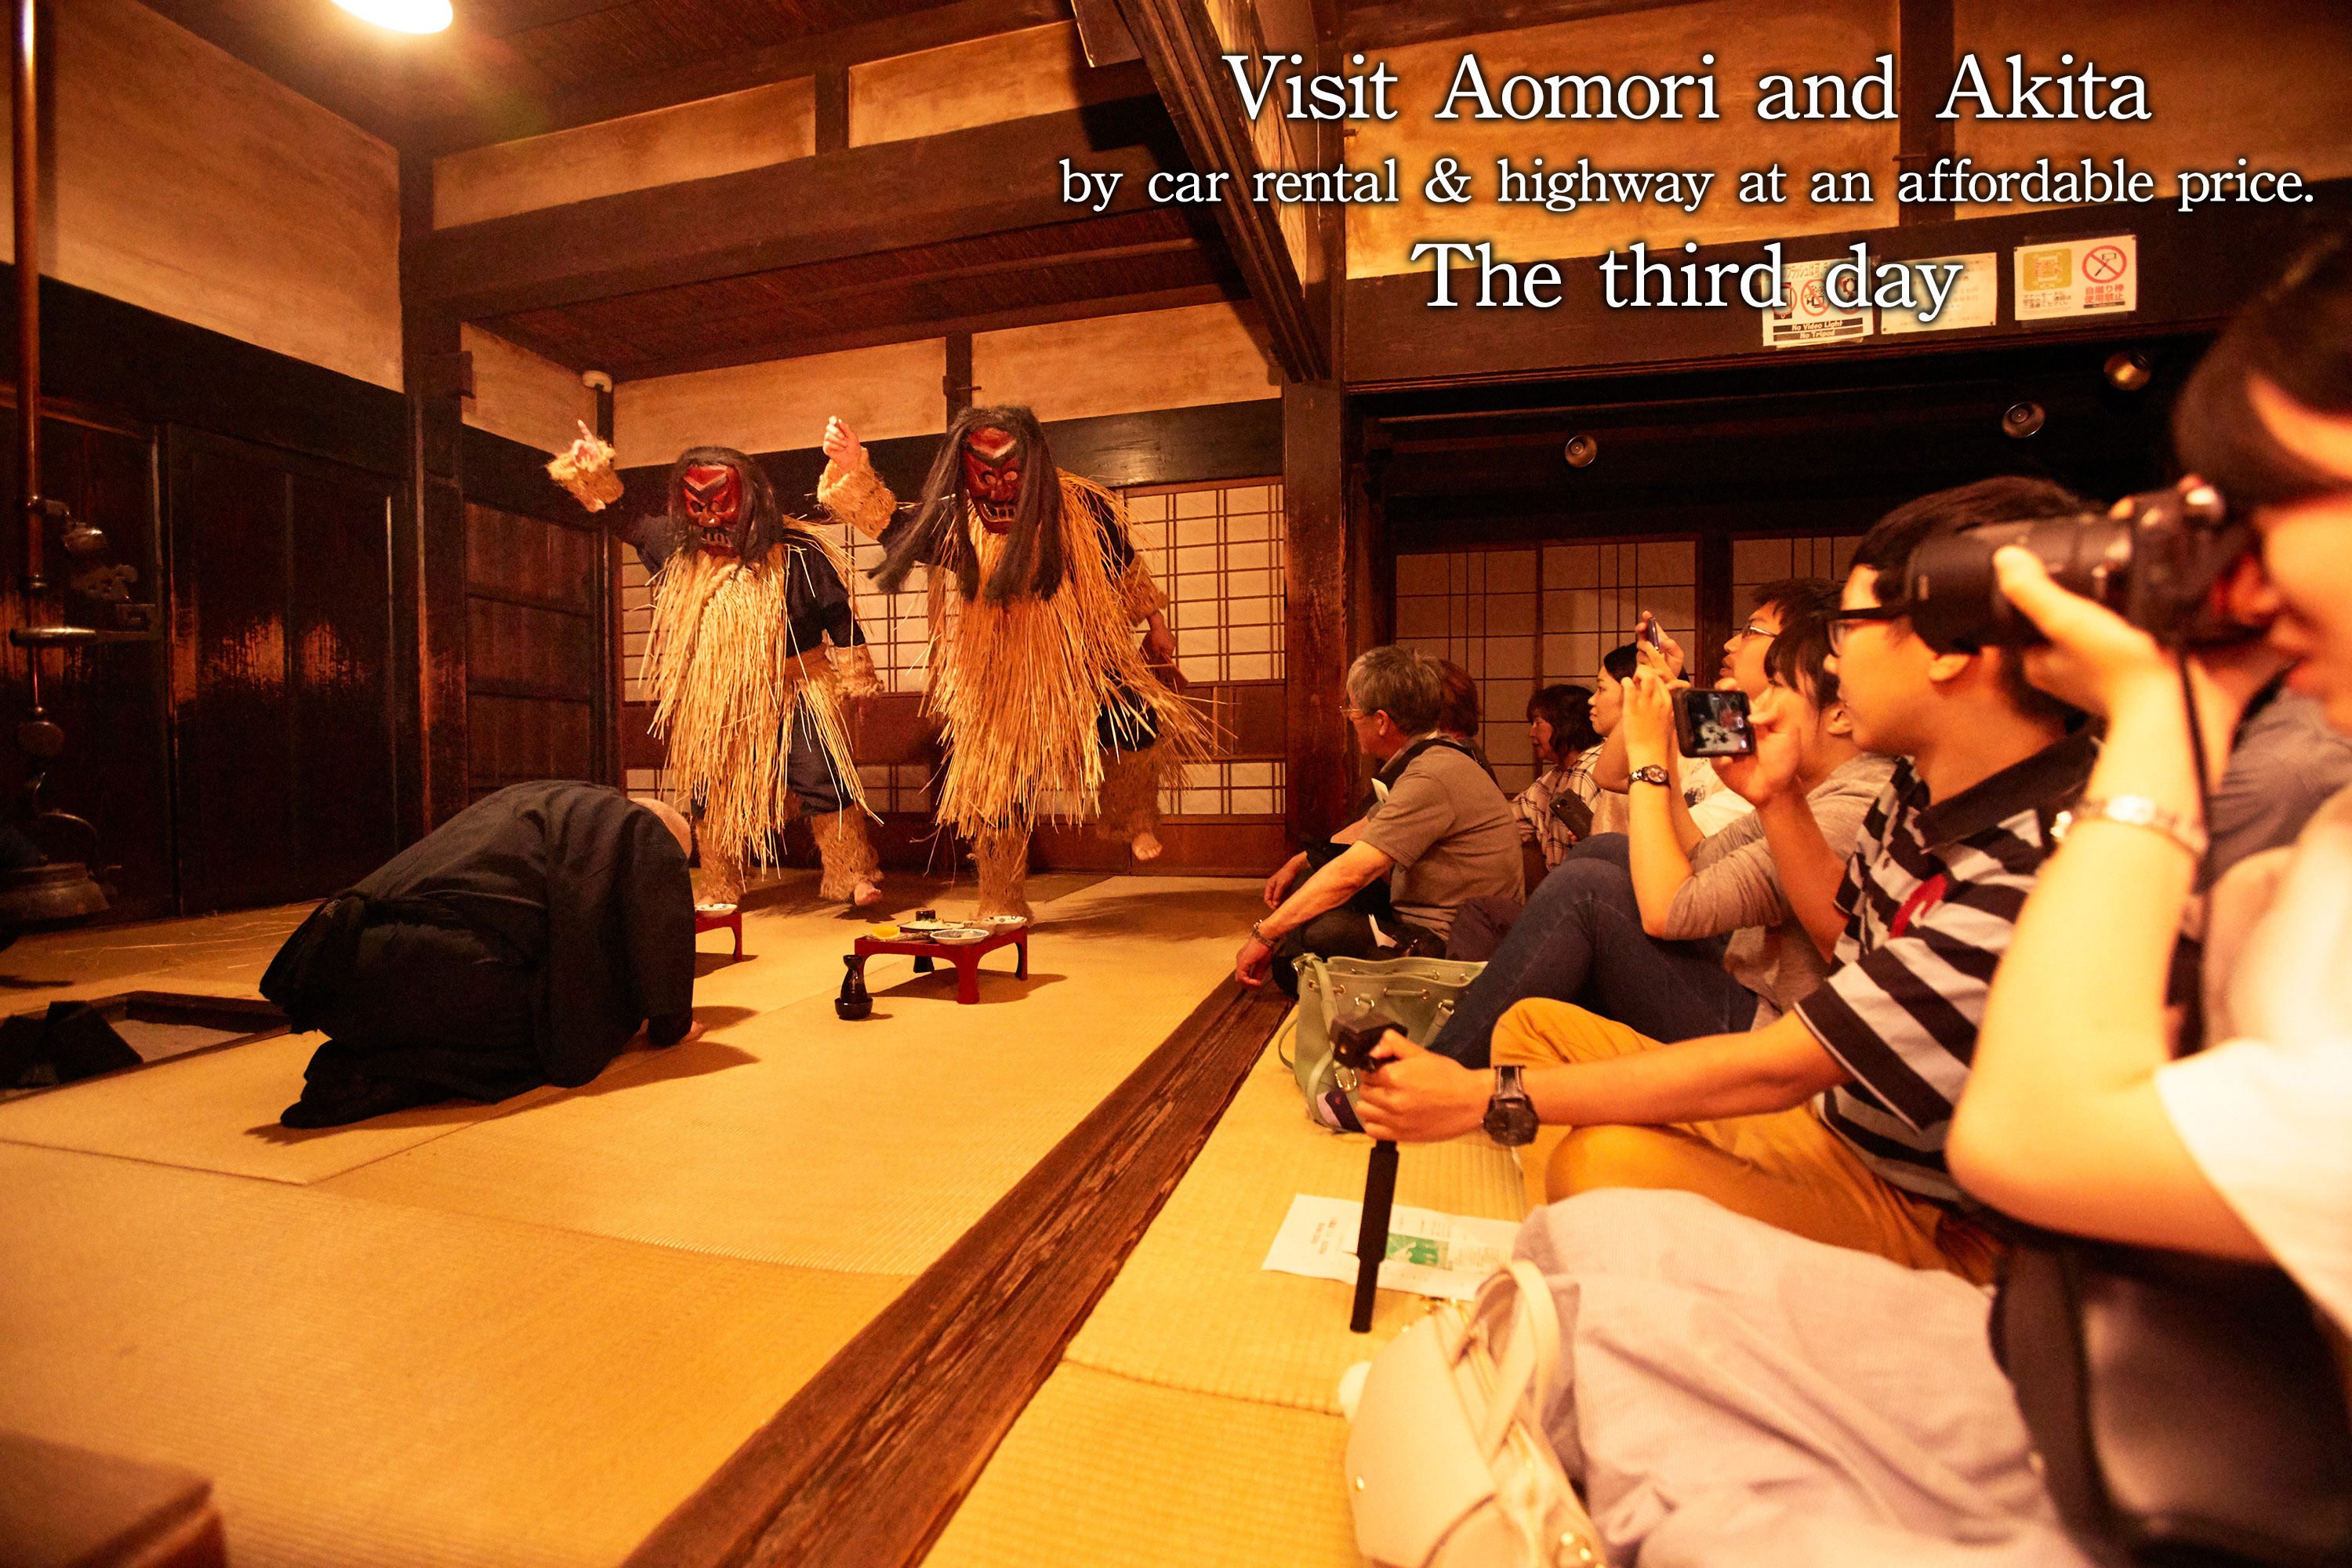 〜The third day〜Visiting  Aomori and Akita Prefectures by a rental & highway car at an affordable price